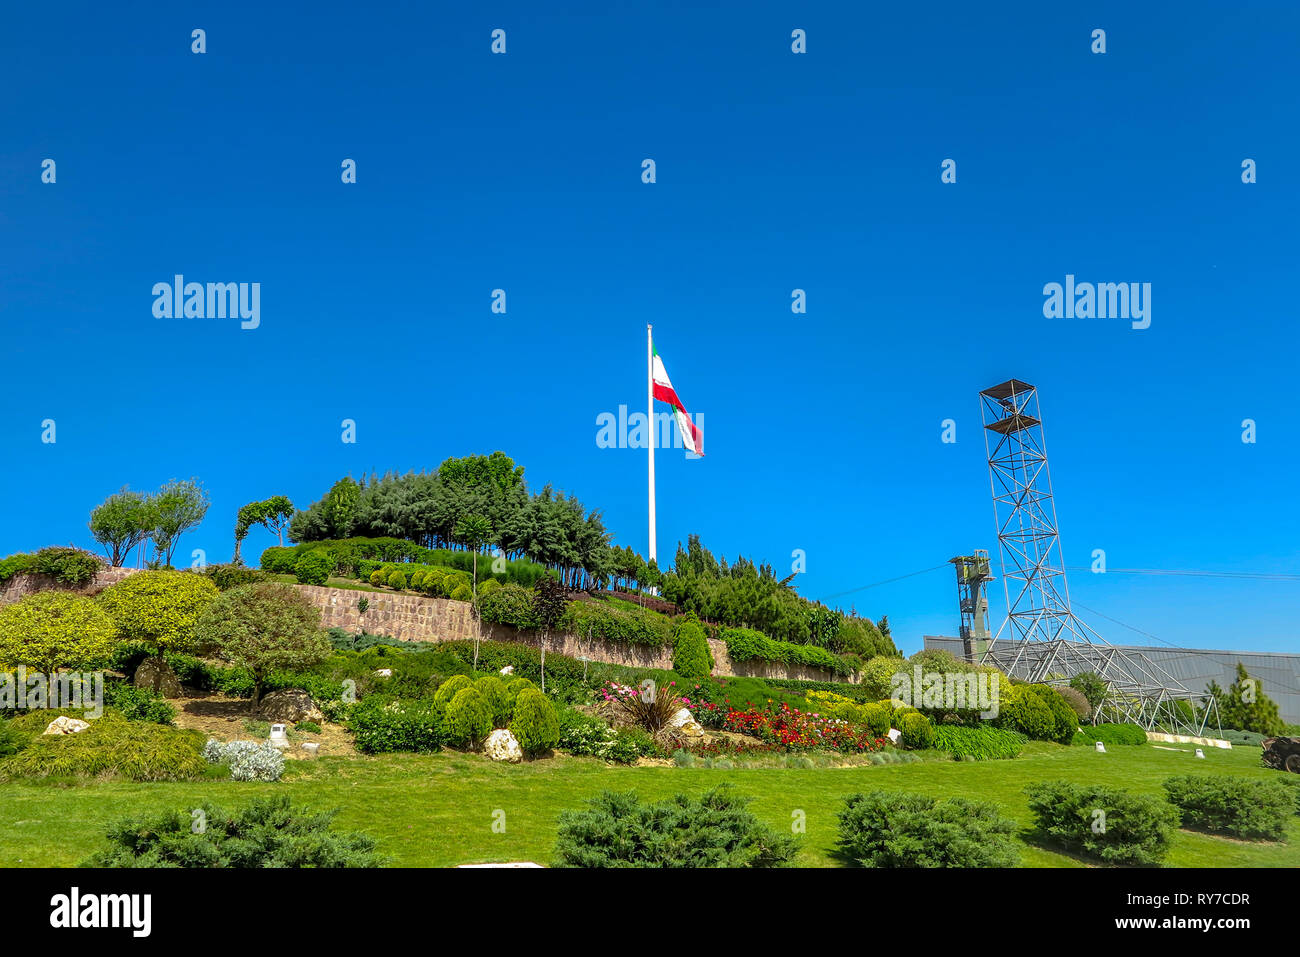 Tehran Ab-o Atash Park with View of Iran Flag Tower - Stock Image